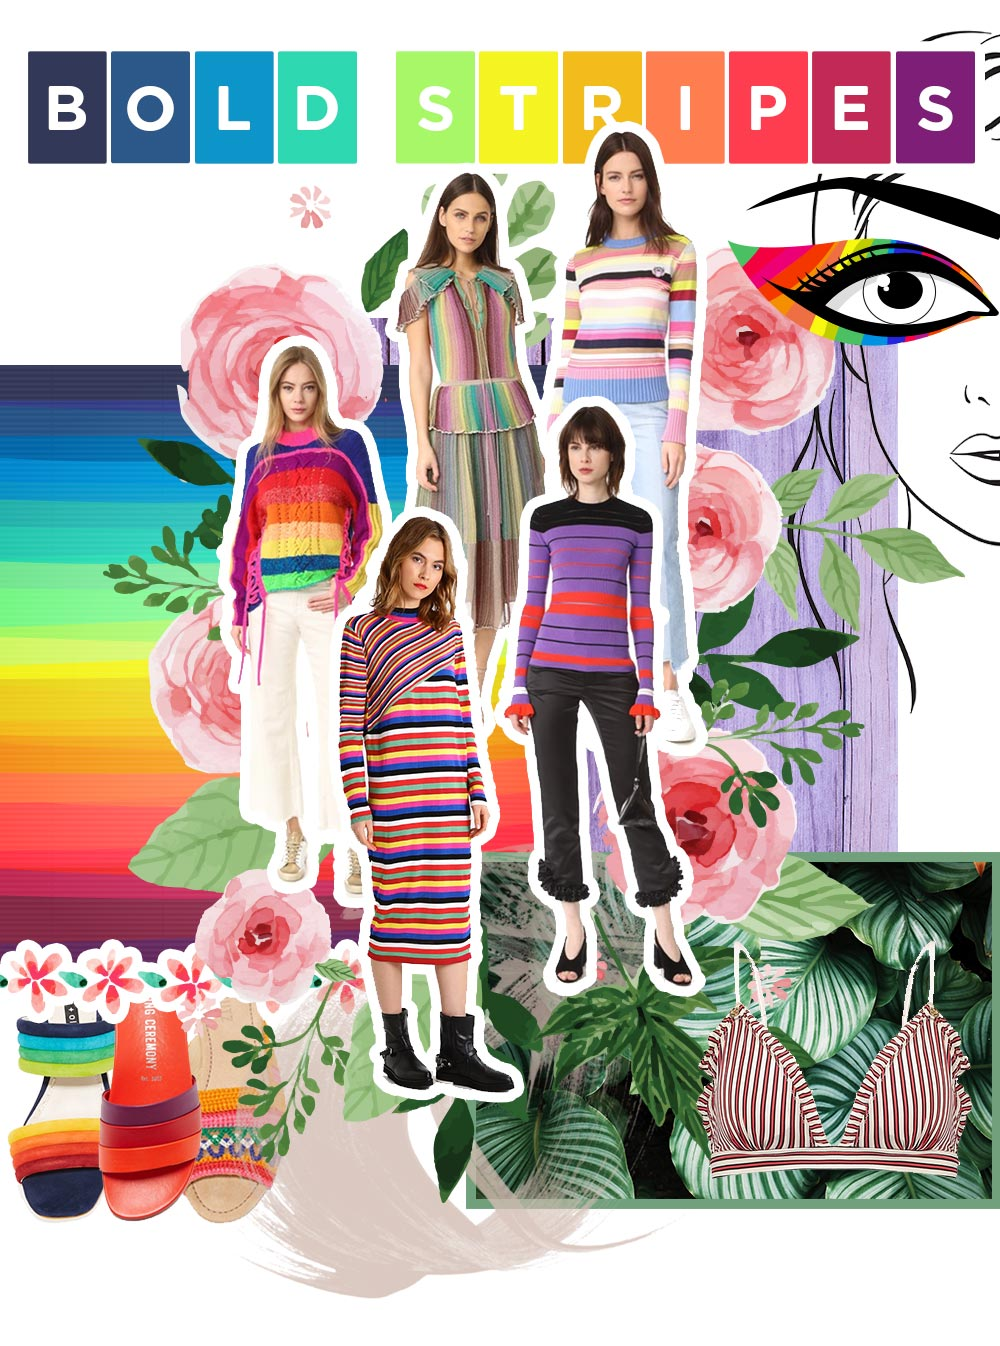 Fashion Mood Board Bold Stripes, Trend 2017, Fashion Trends Moodboard, Modetrends Inspiration, Style Blog, Modeblog, Fashion Blog, Inspiration, www.whoismocca.com